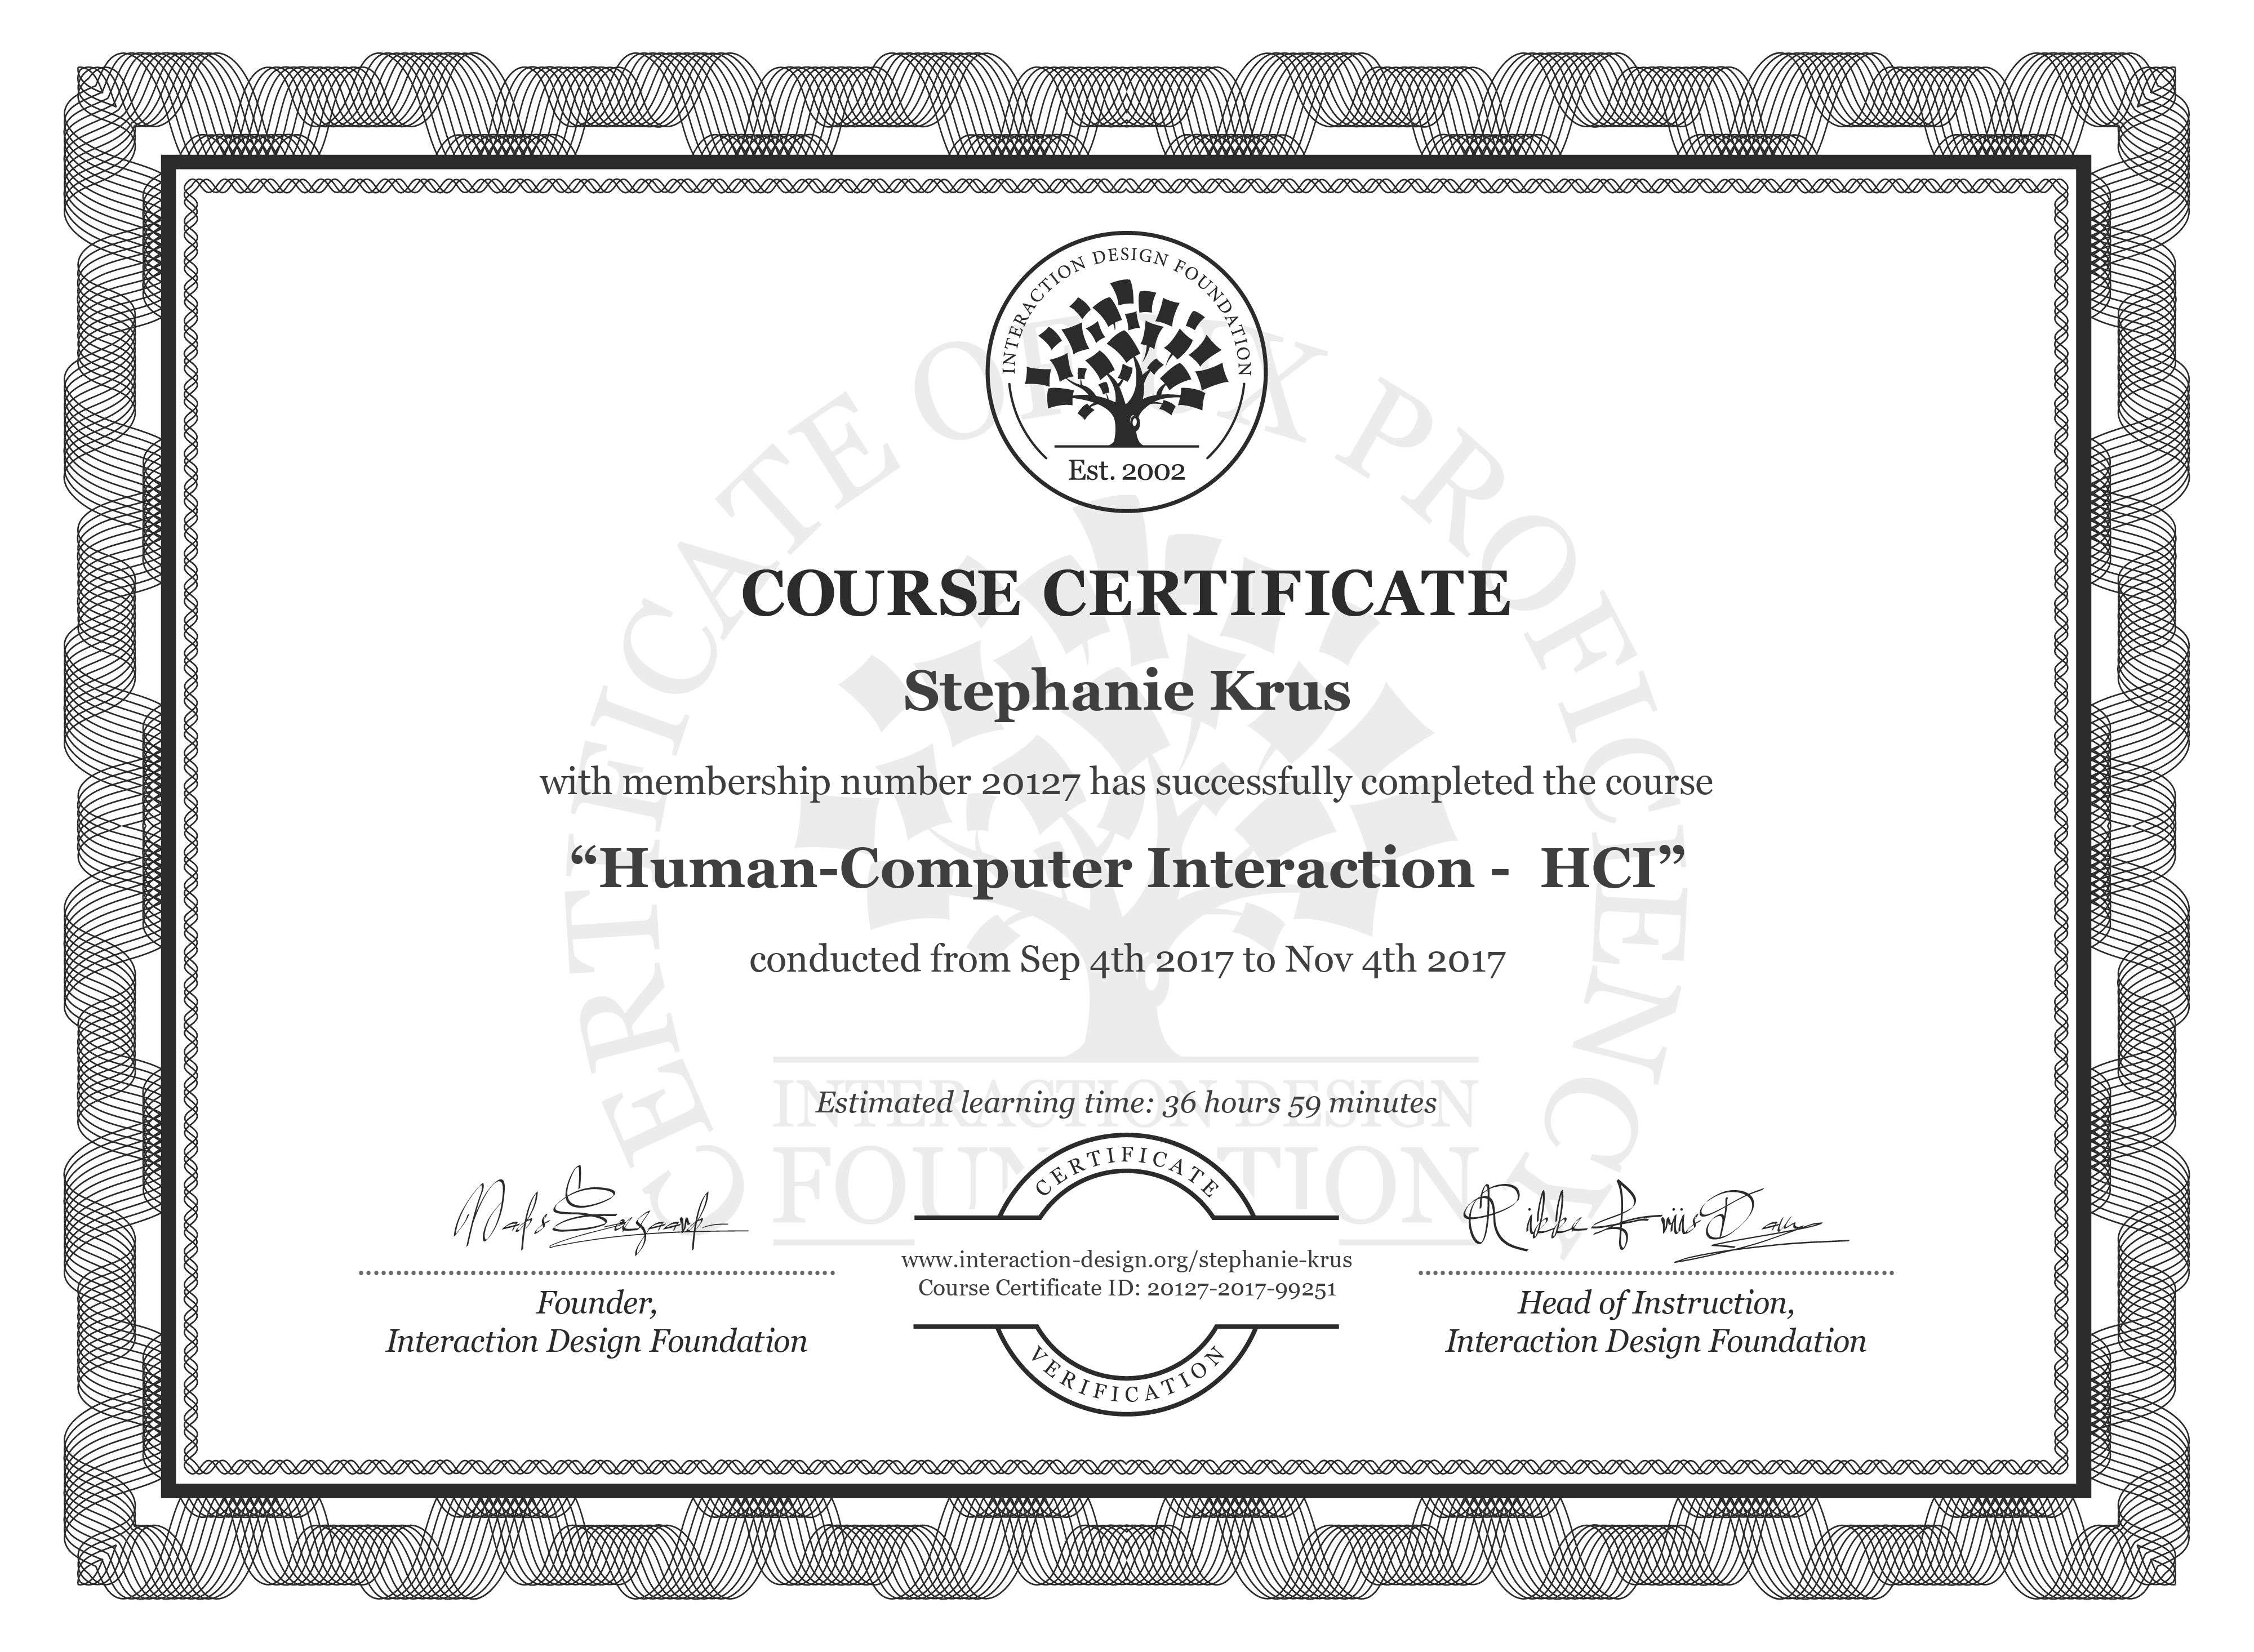 Stephanie Krus: Course Certificate - Human-Computer Interaction -  HCI